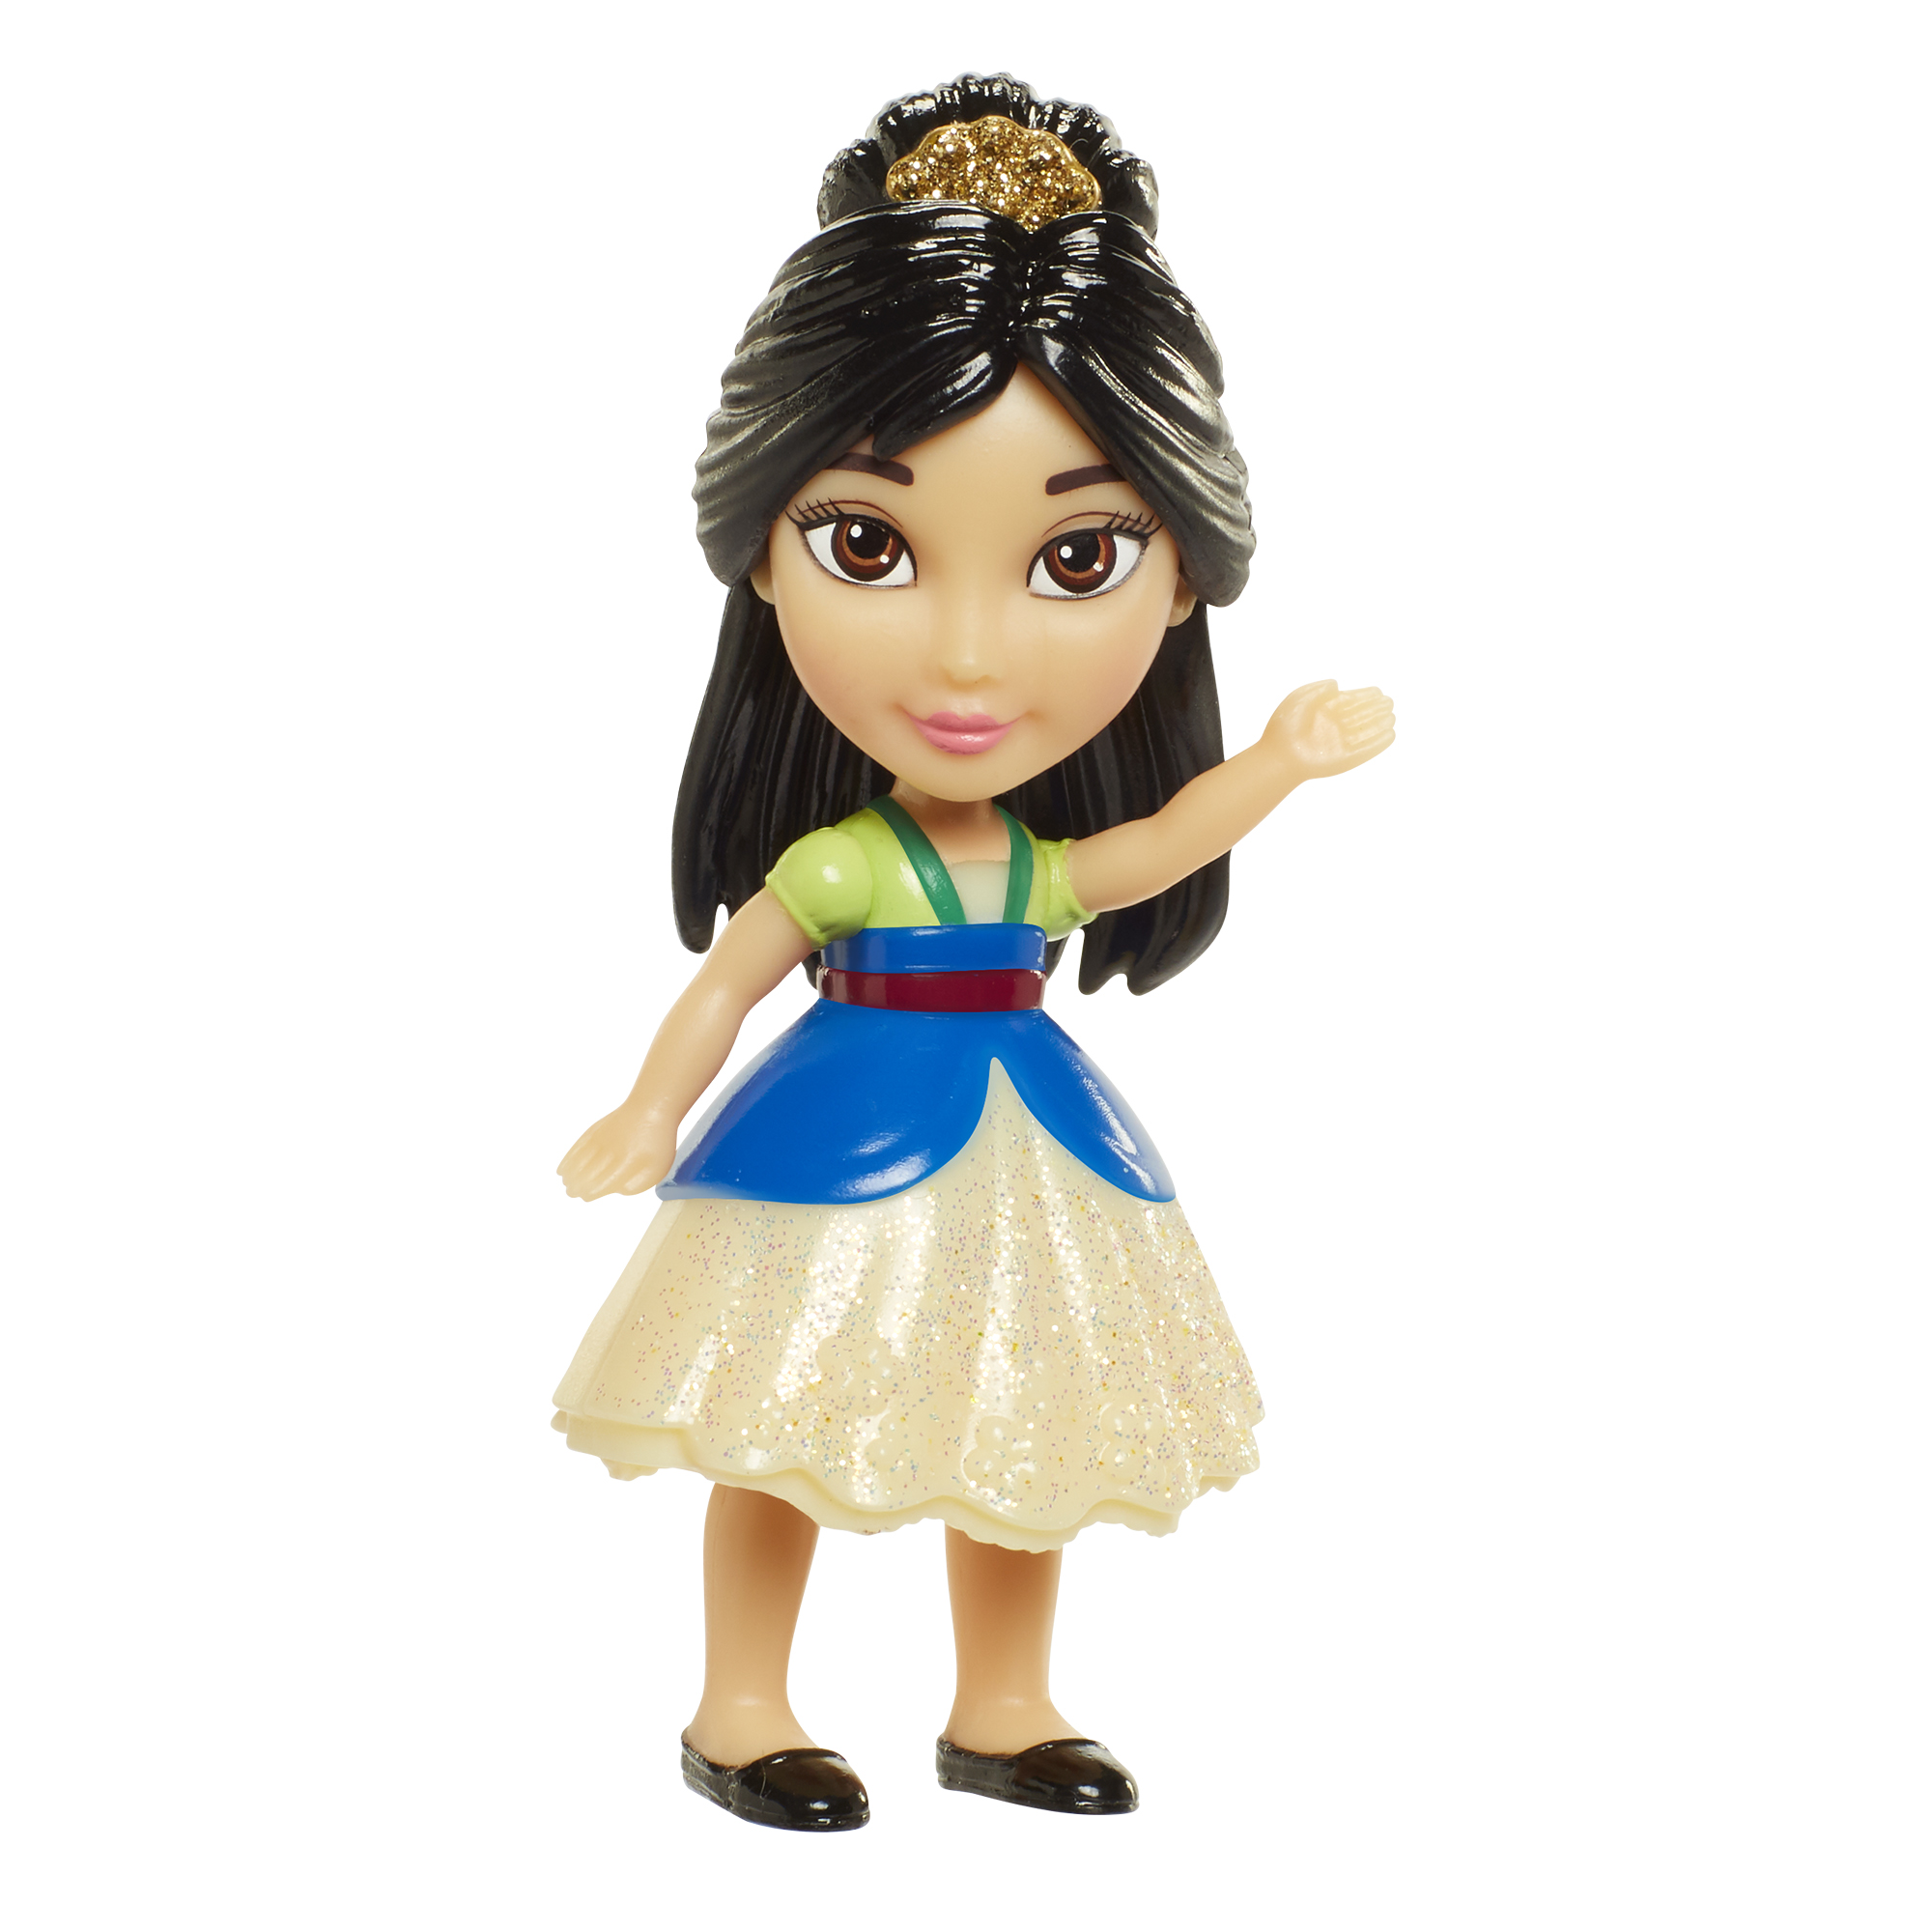 Mulan 3 inch Mini Doll Disney Princess